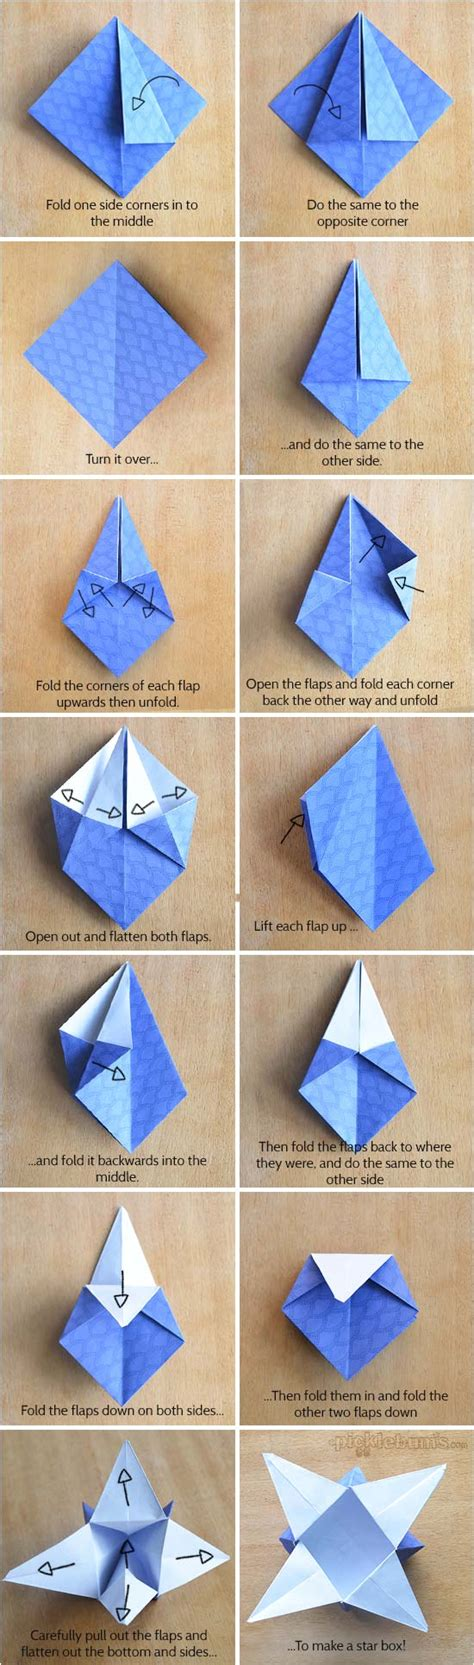 Where Do You Buy Origami Paper - origami boxes with printable origami paper origami